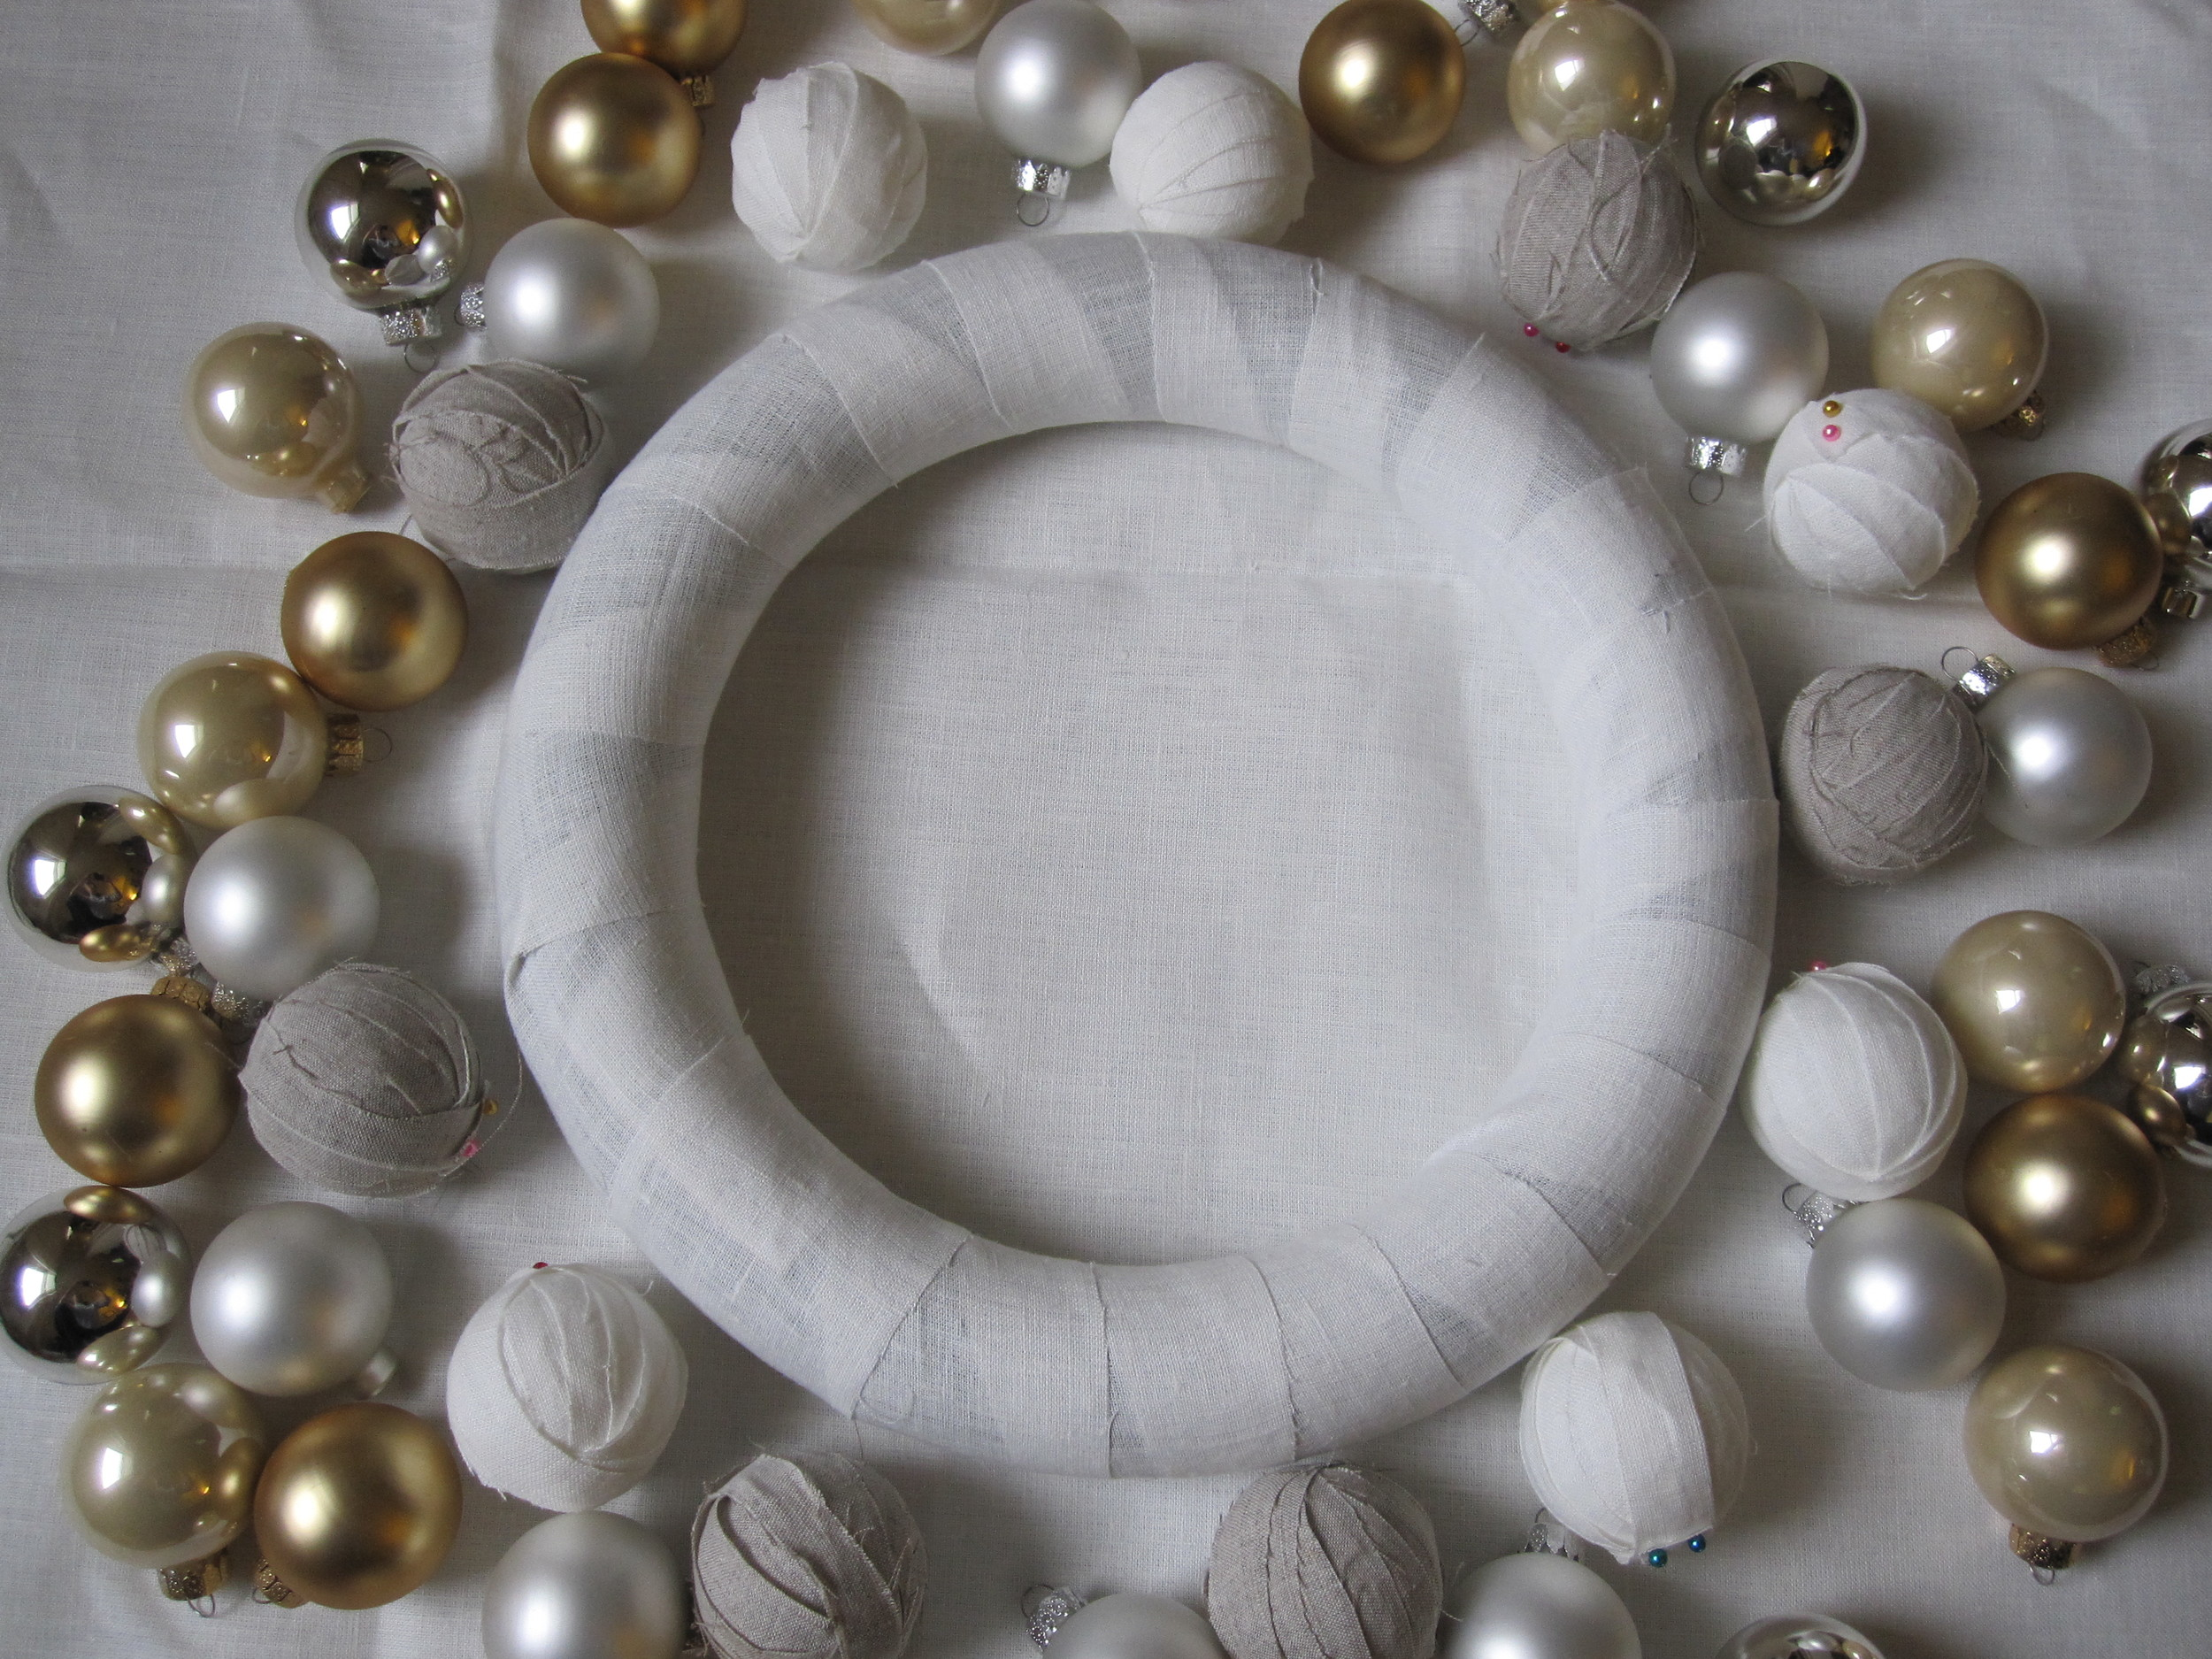 Spread All Of The Ornaments Out Around The Wreath And Arrange Them In A  General Pattern Of How You Want Them This Will Help You Make Sure The  Different